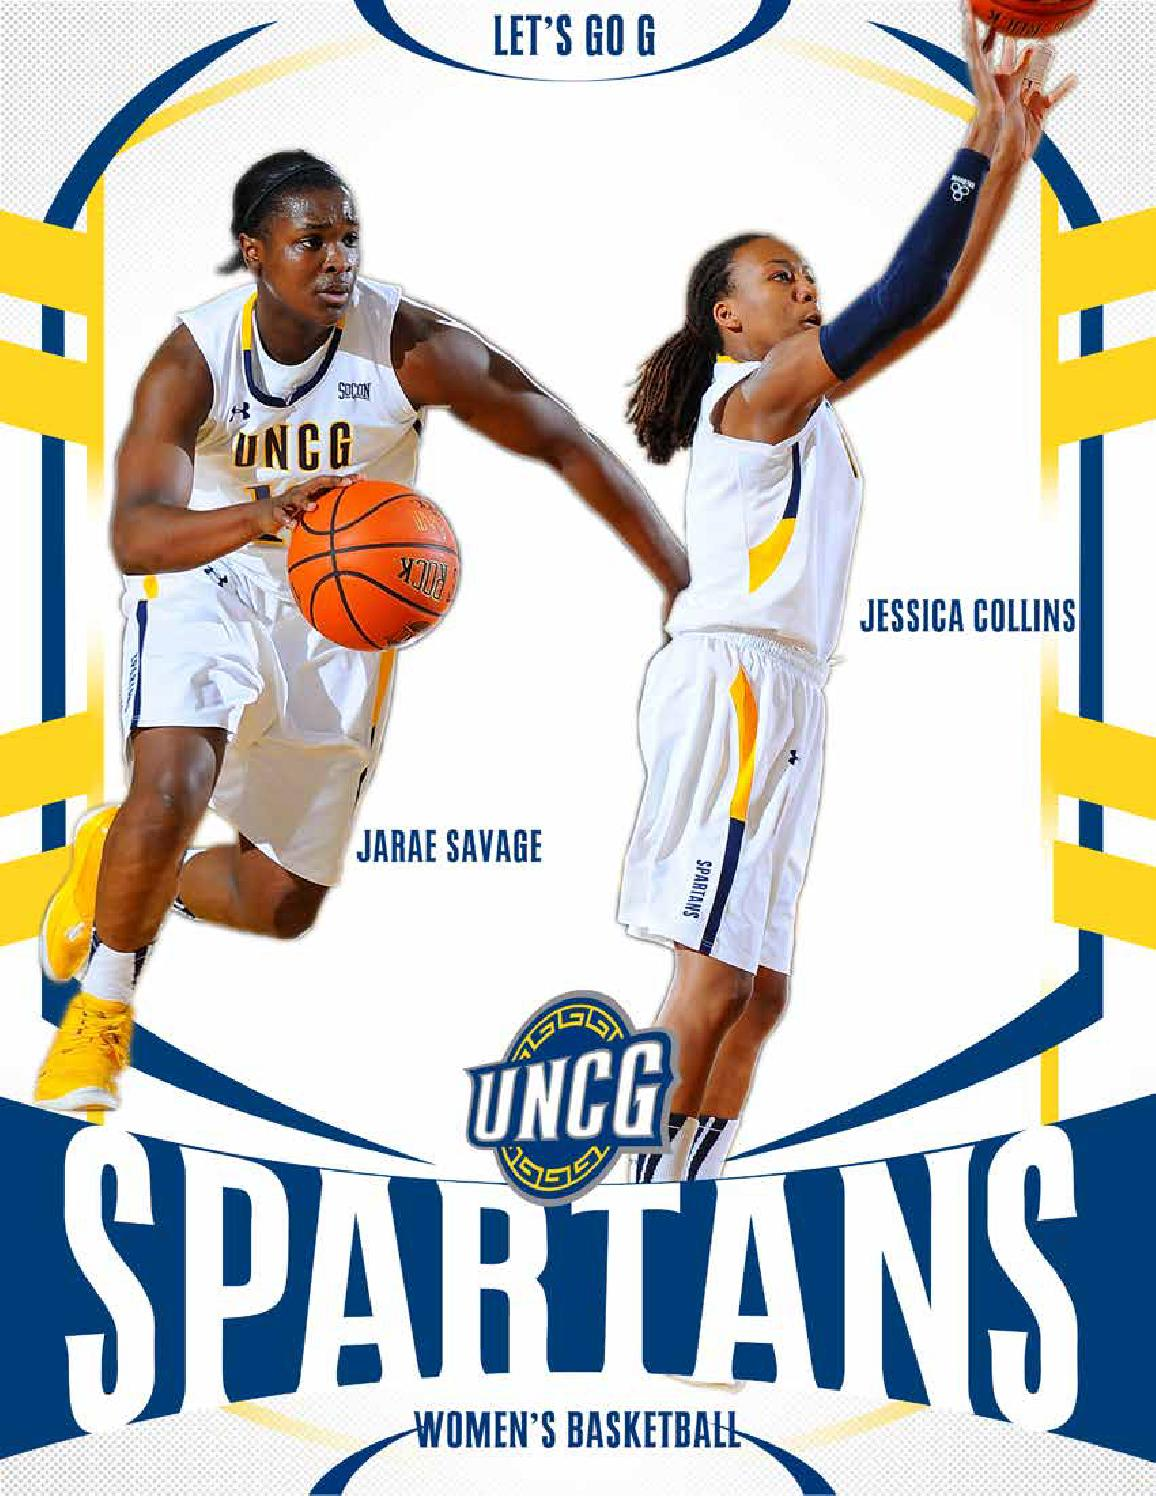 2014 15 women s basketball guide by uncg athletics issuu uncg logo change uncg logo new